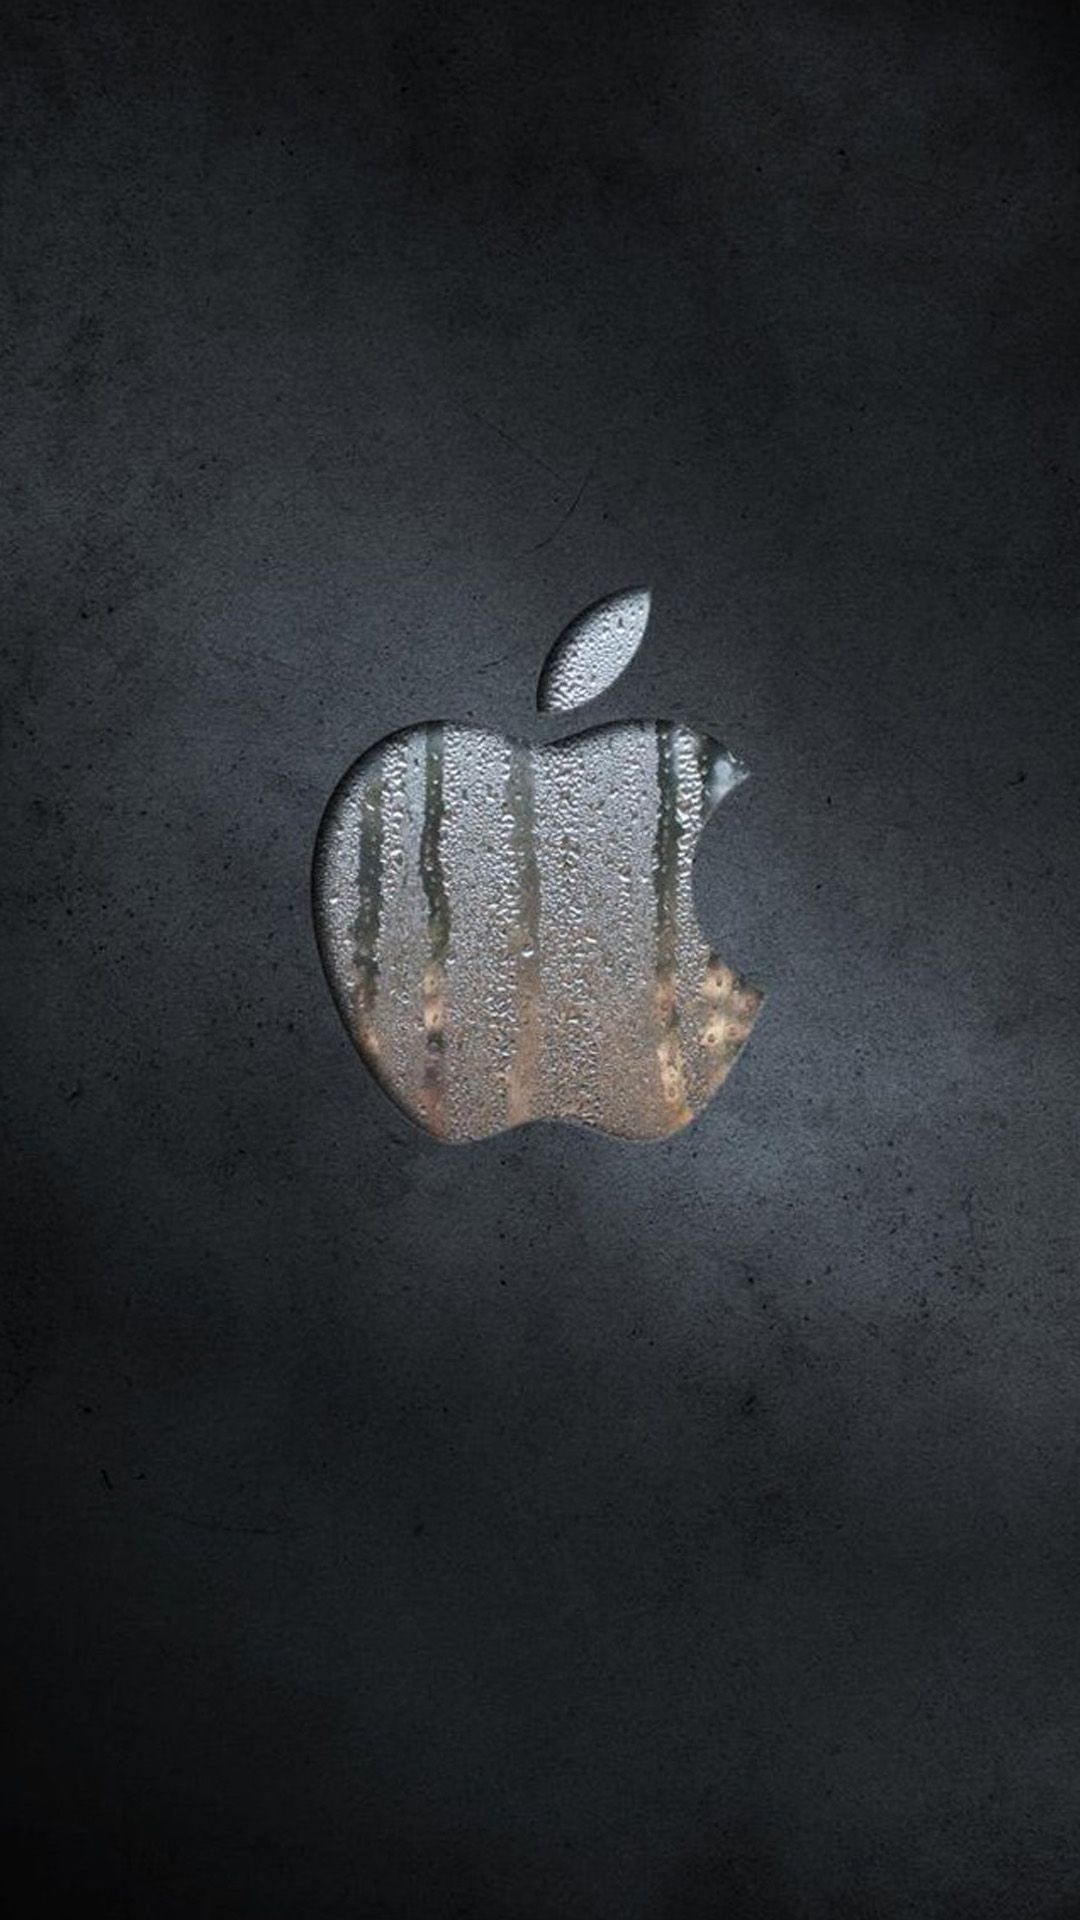 Apple Wallpapers 1080p » Hupages ...